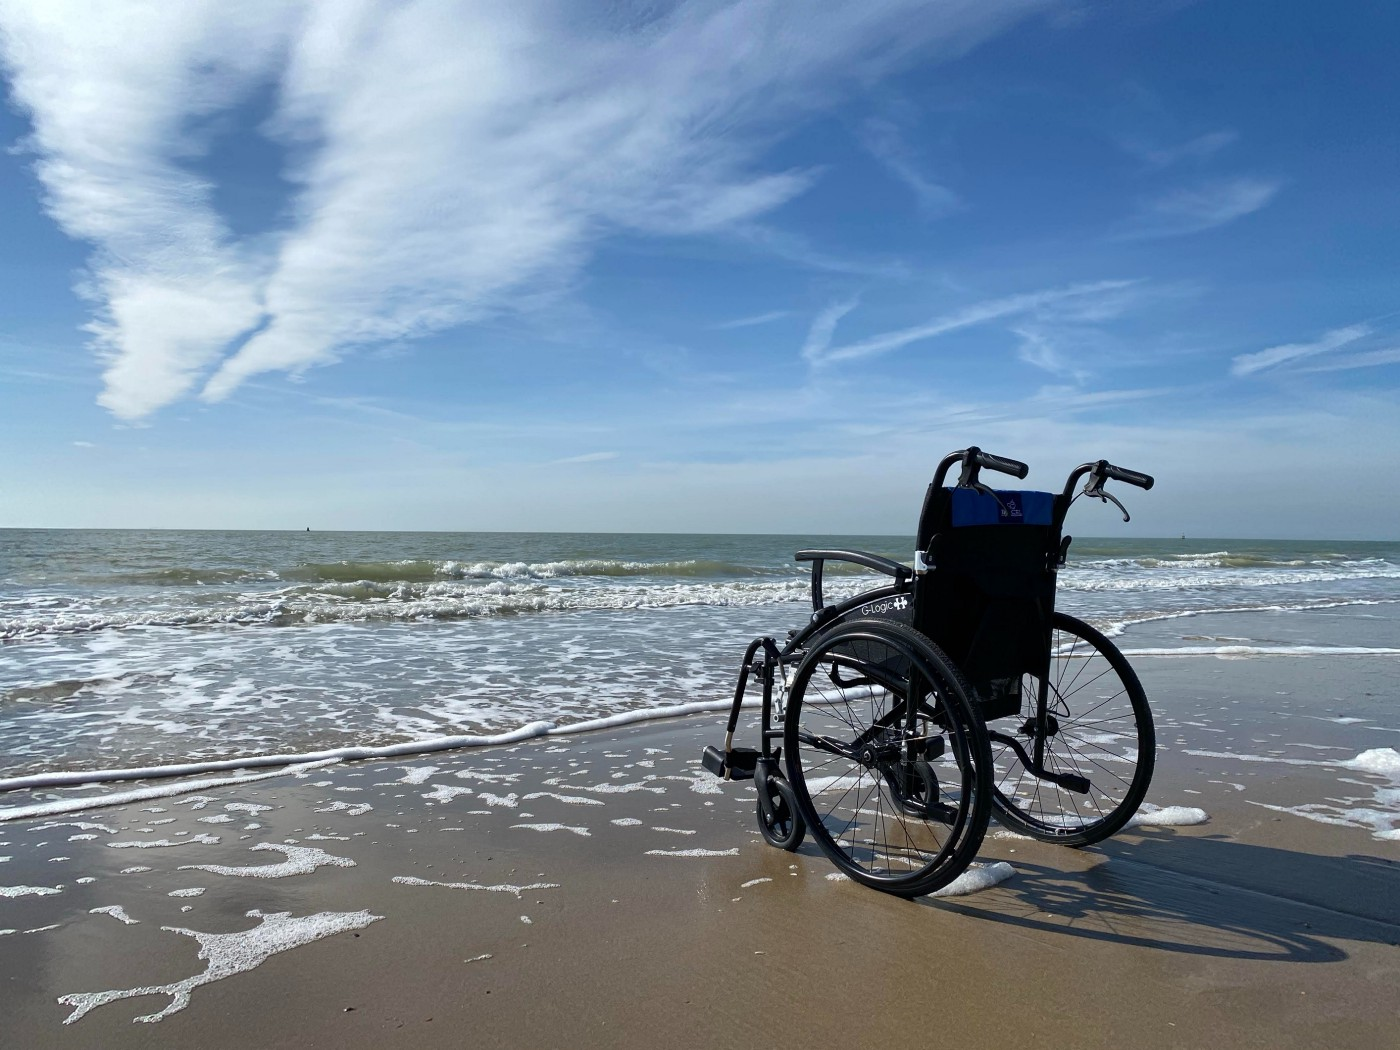 A wheelchair by the ocean; waves are lapping up the beach under a blue sky